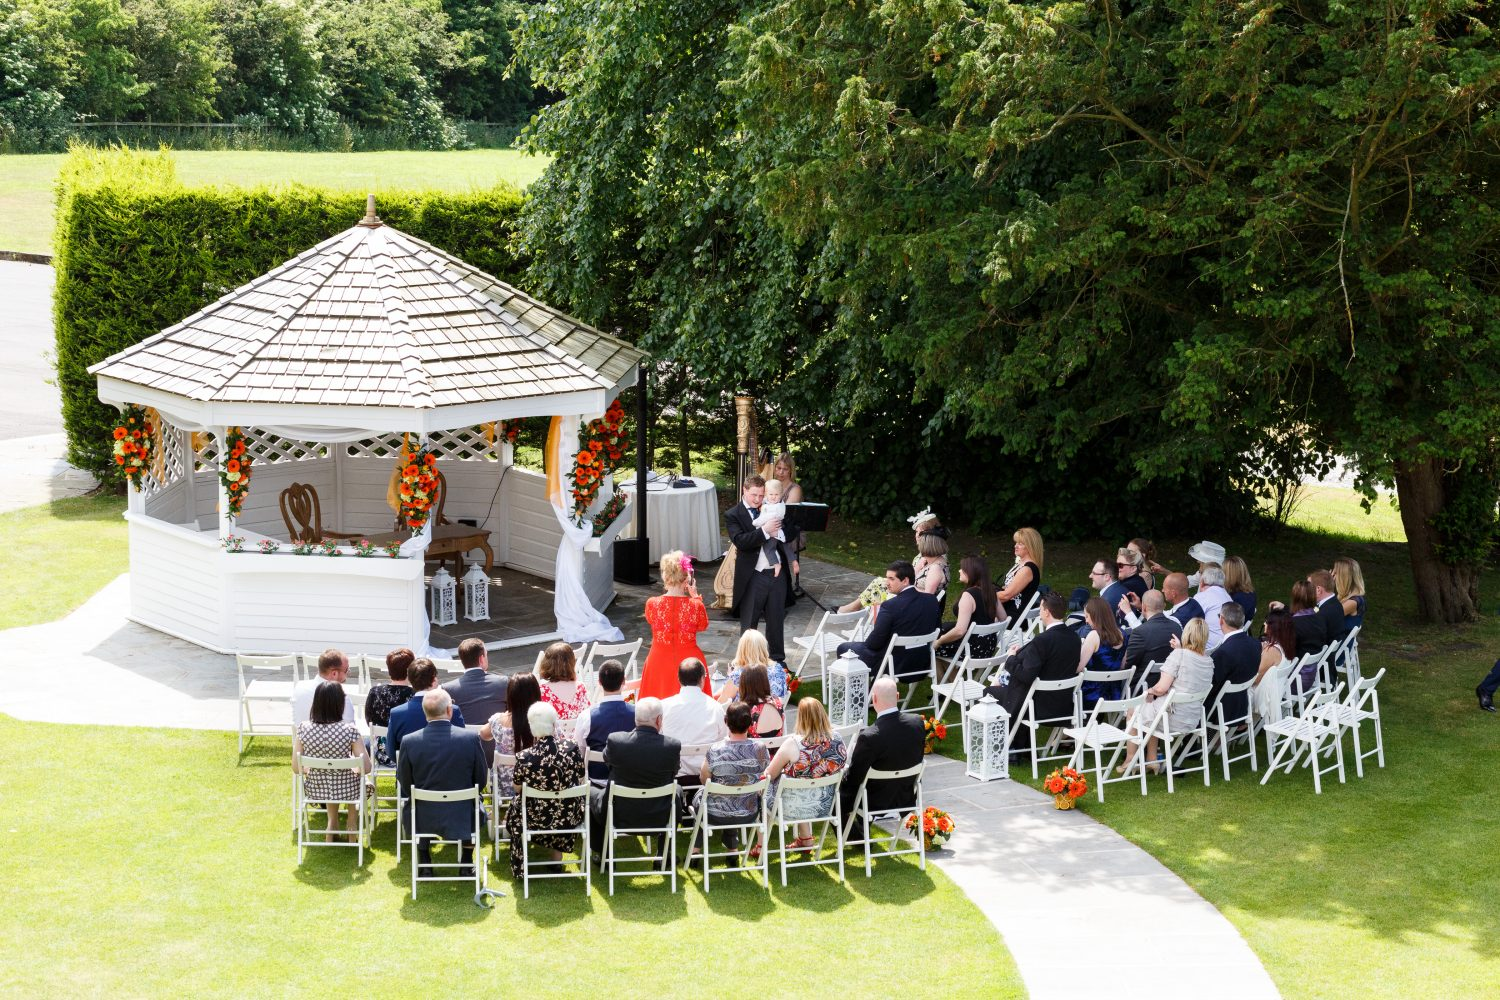 Groom & wedding guests waiting for the bride to arrive at the wedding pagoda in the garden at West Towerony in the